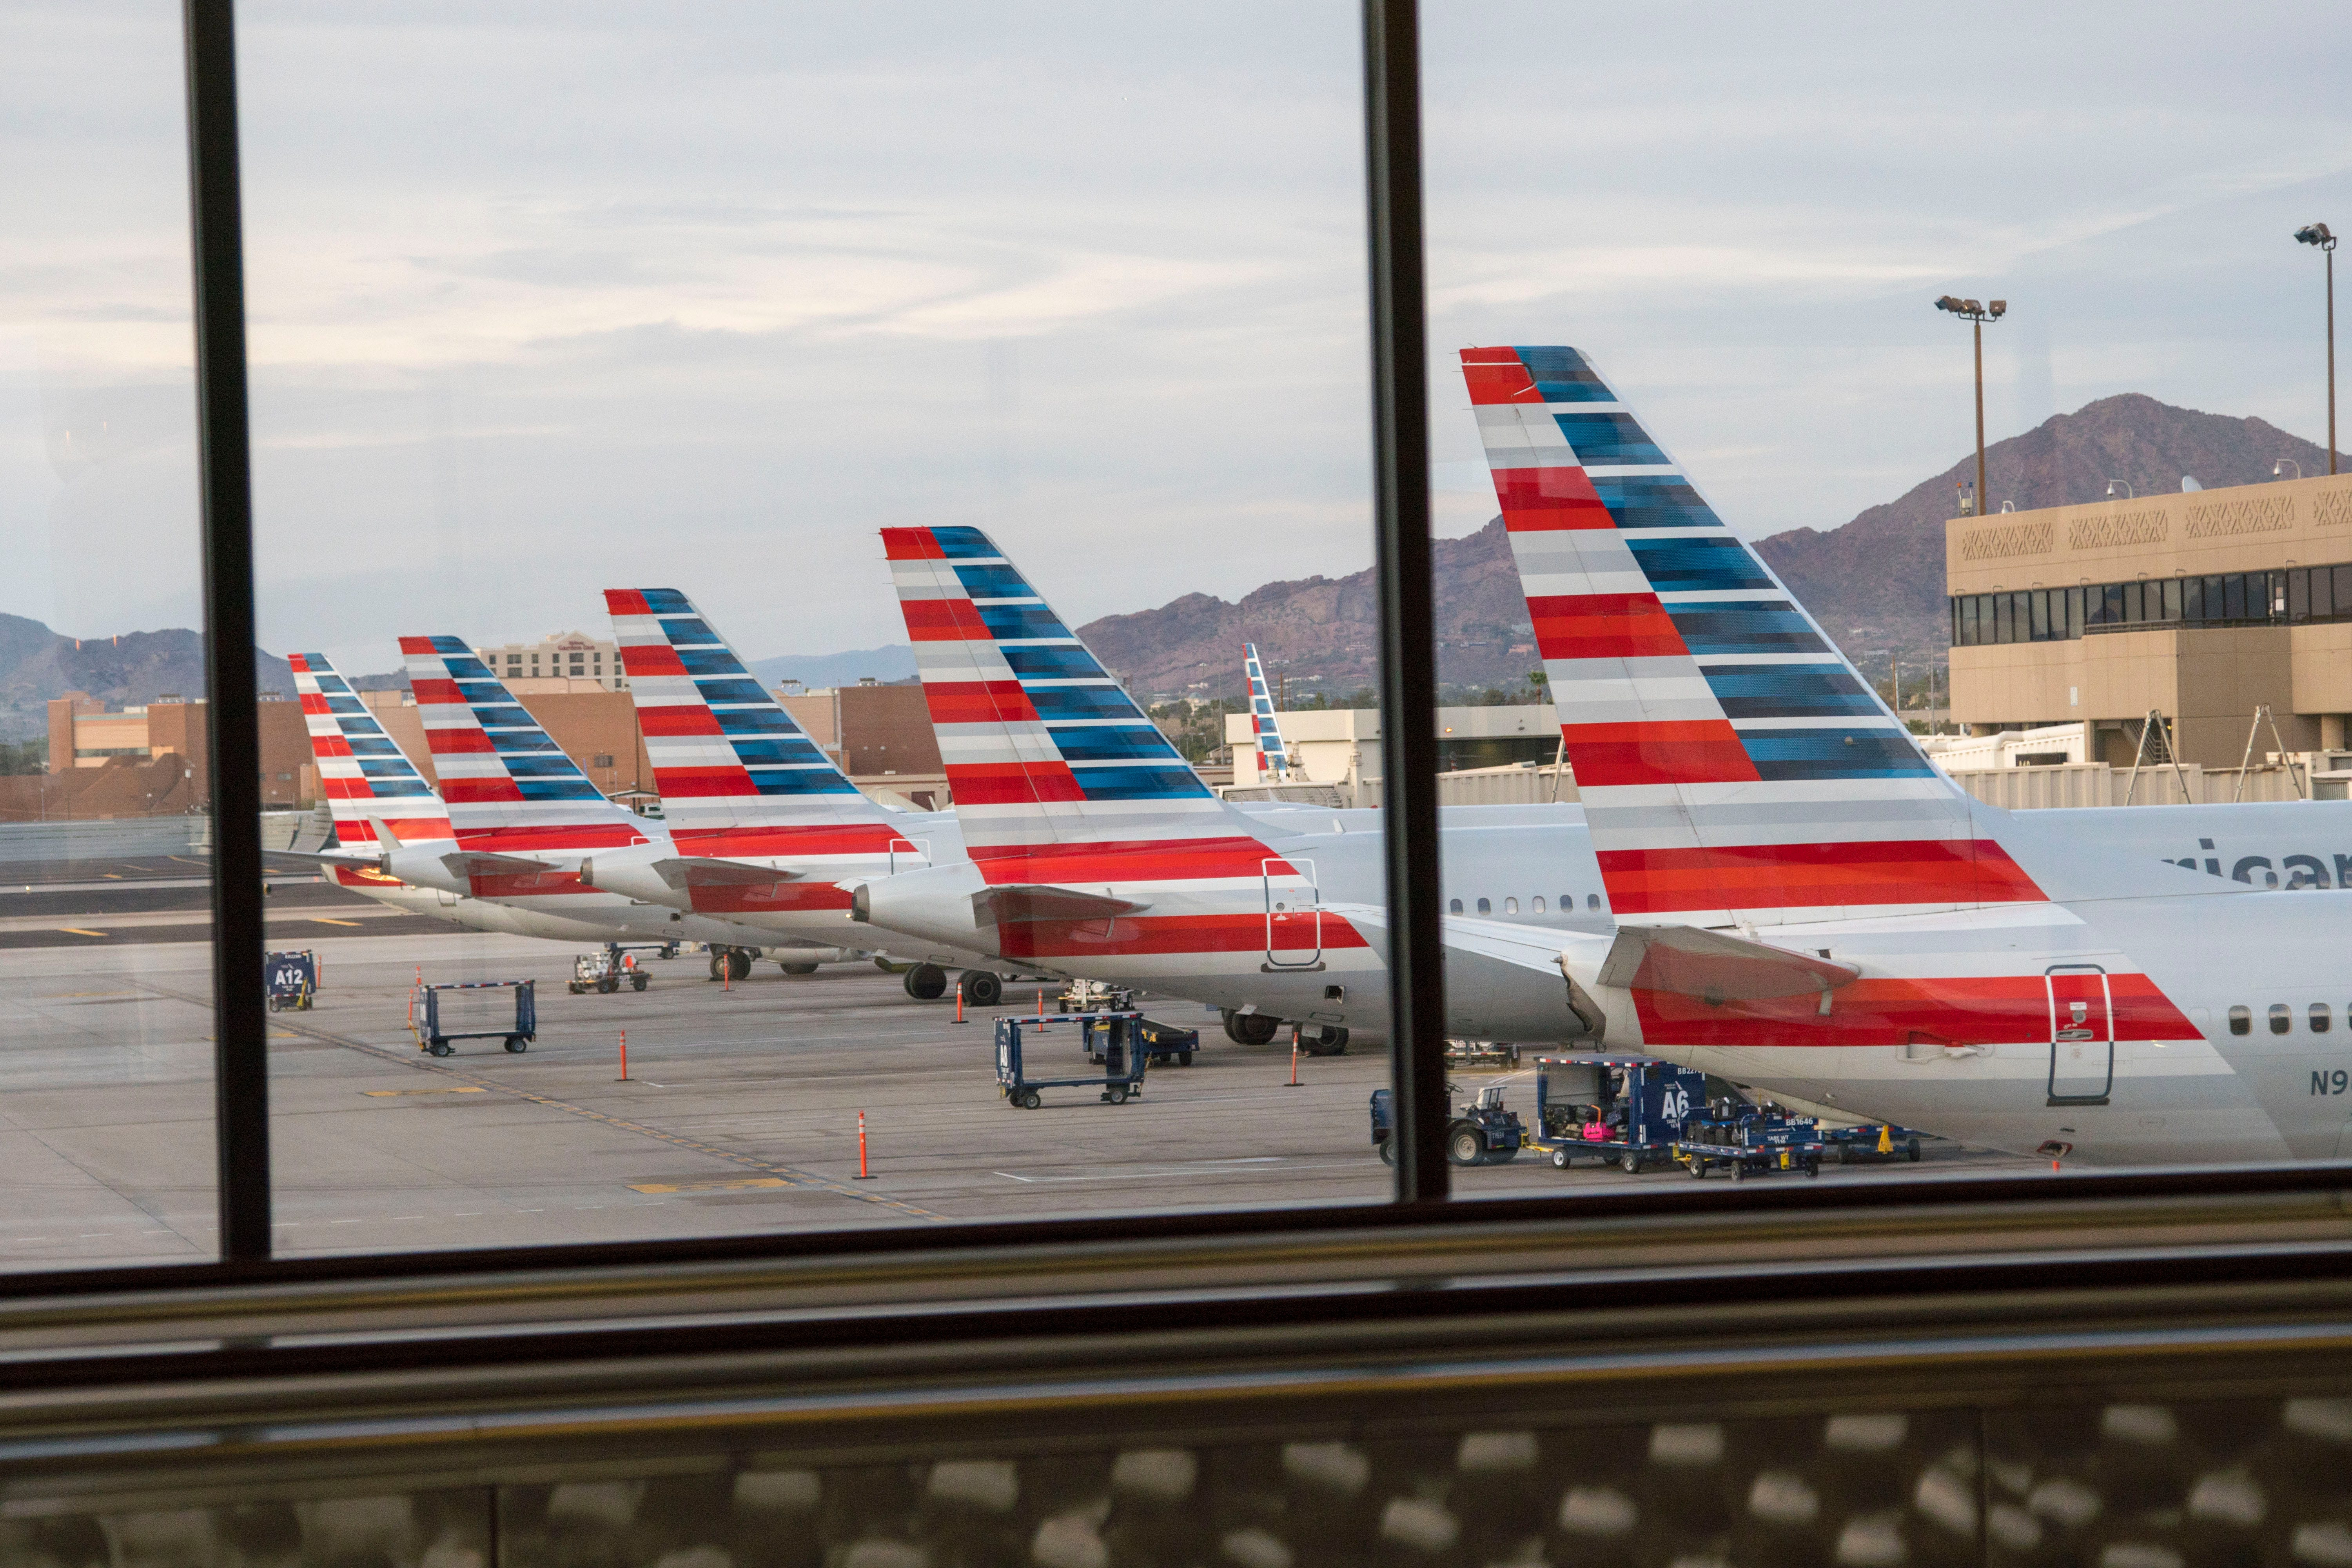 American Airlines expands its Phoenix-London flight to be year-round